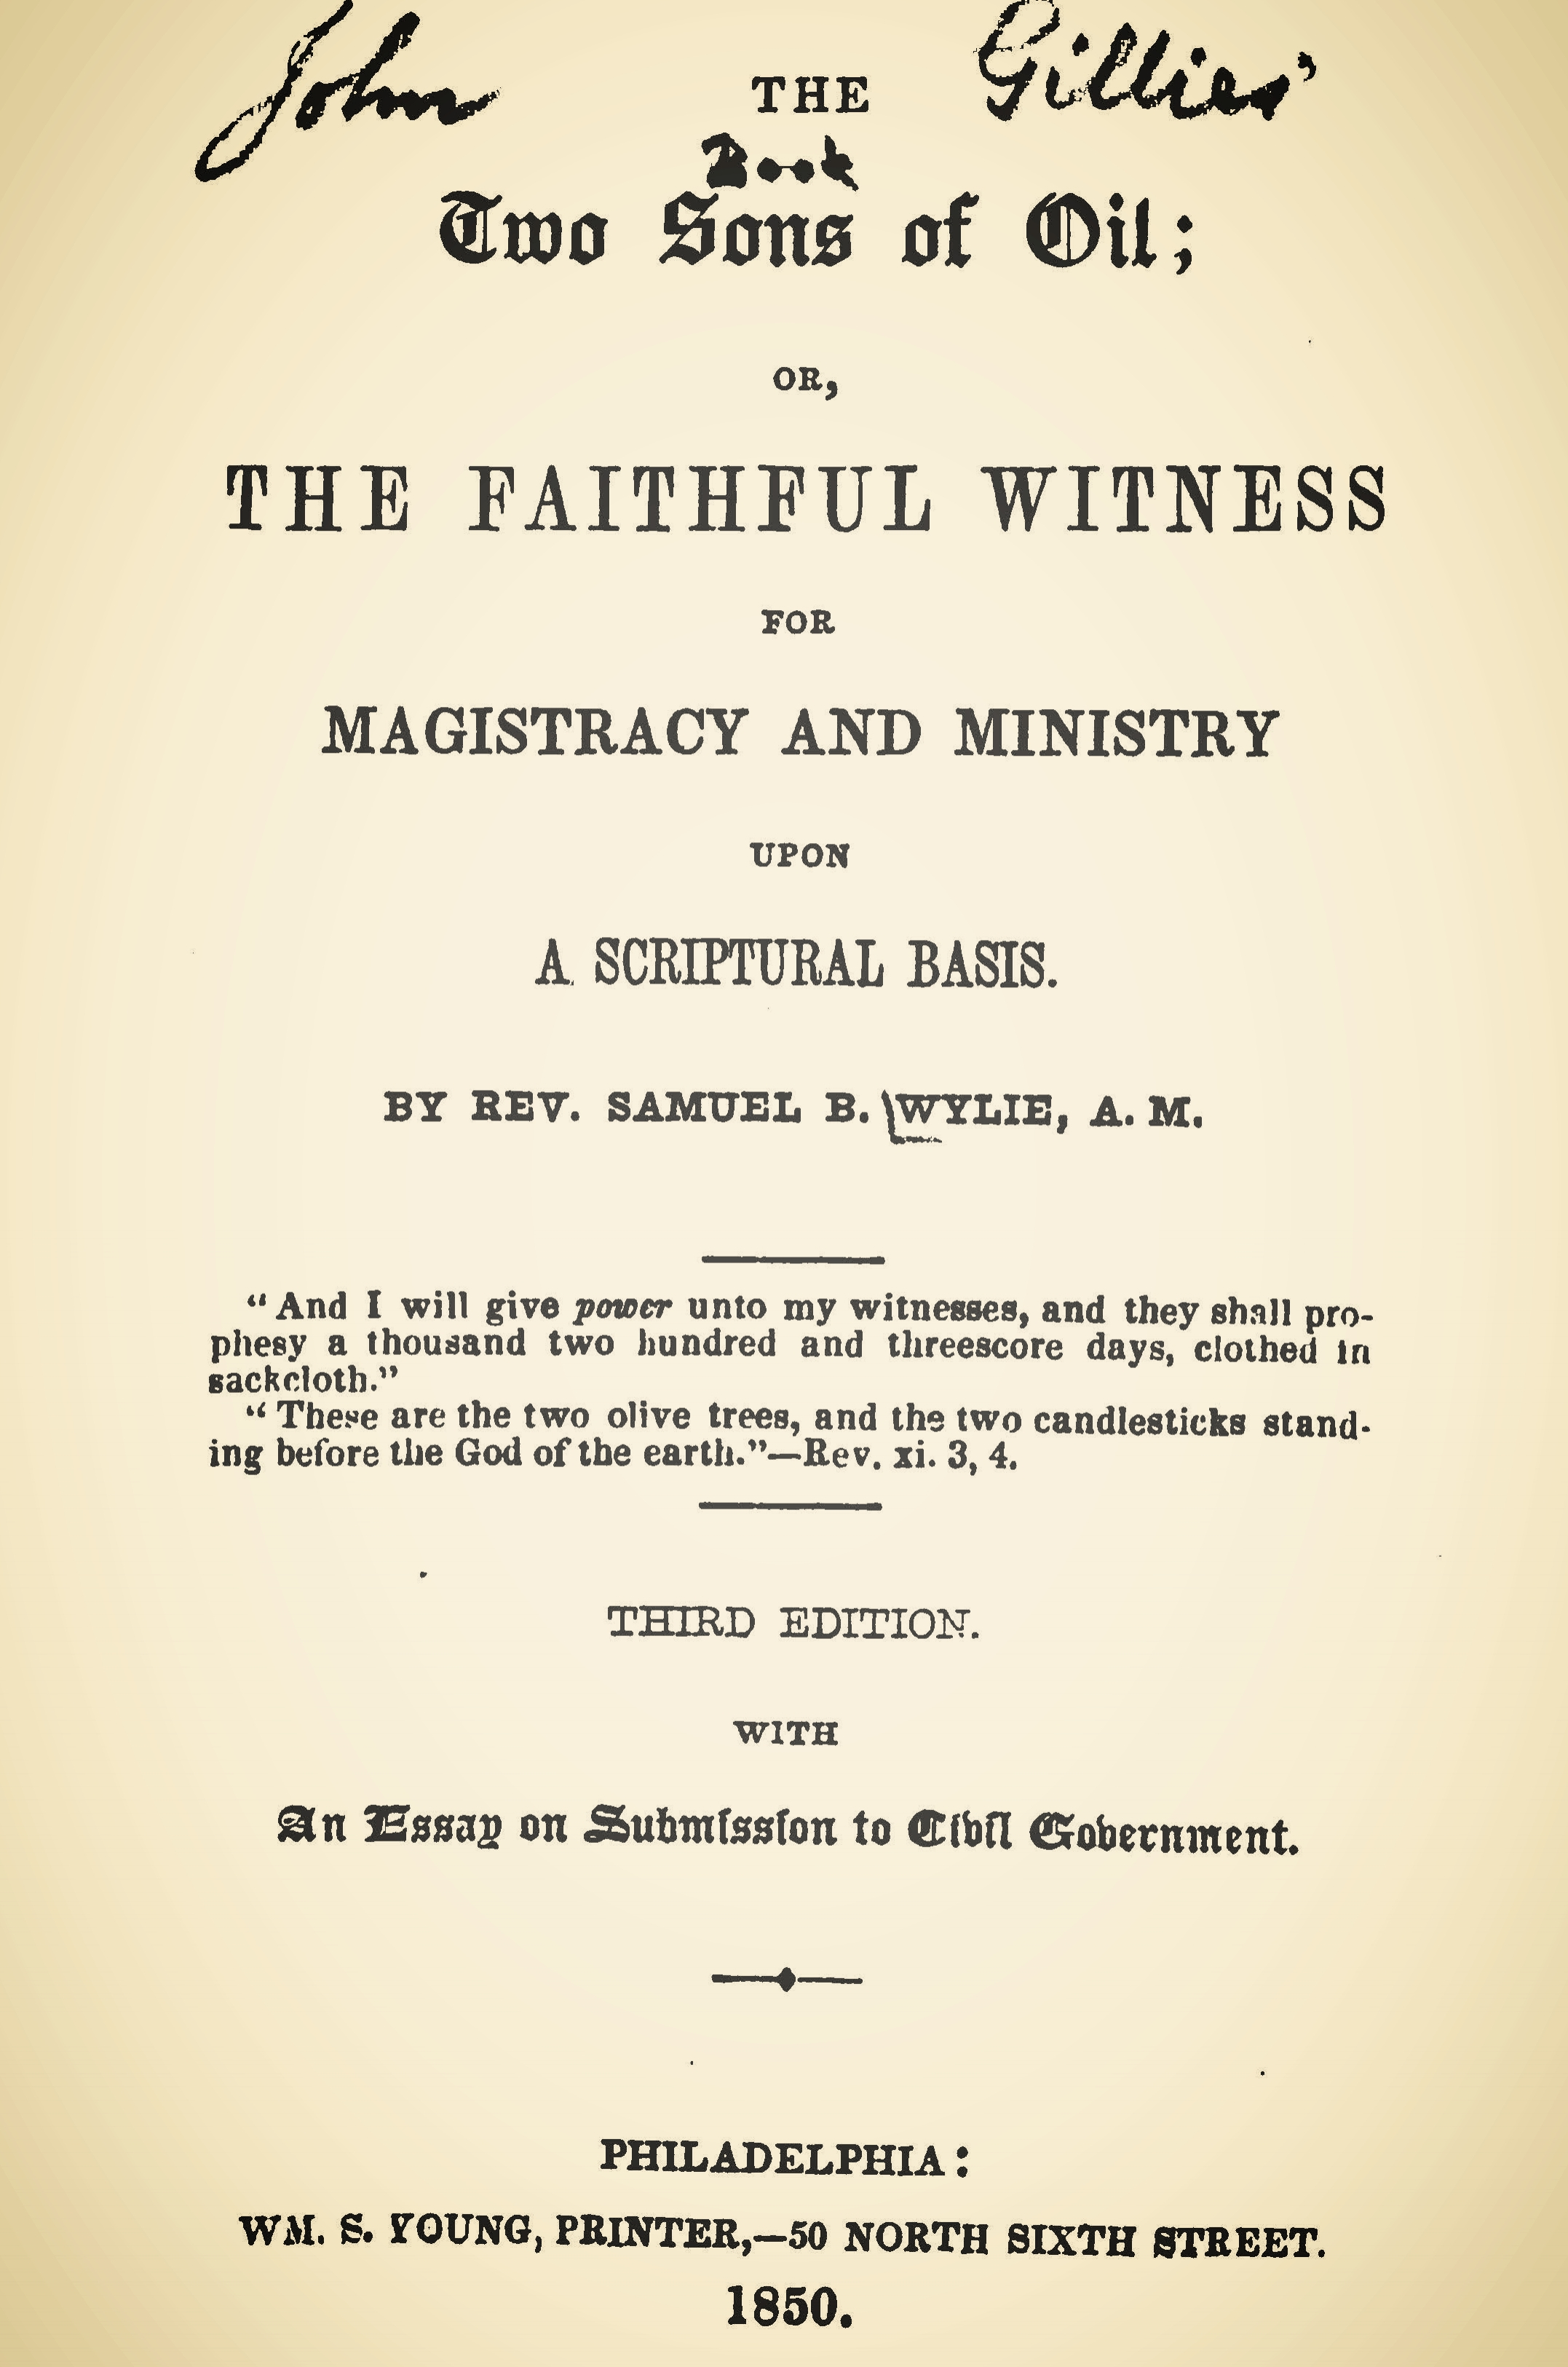 Wylie, Samuel Two Sons of Oil Title Page.jpg